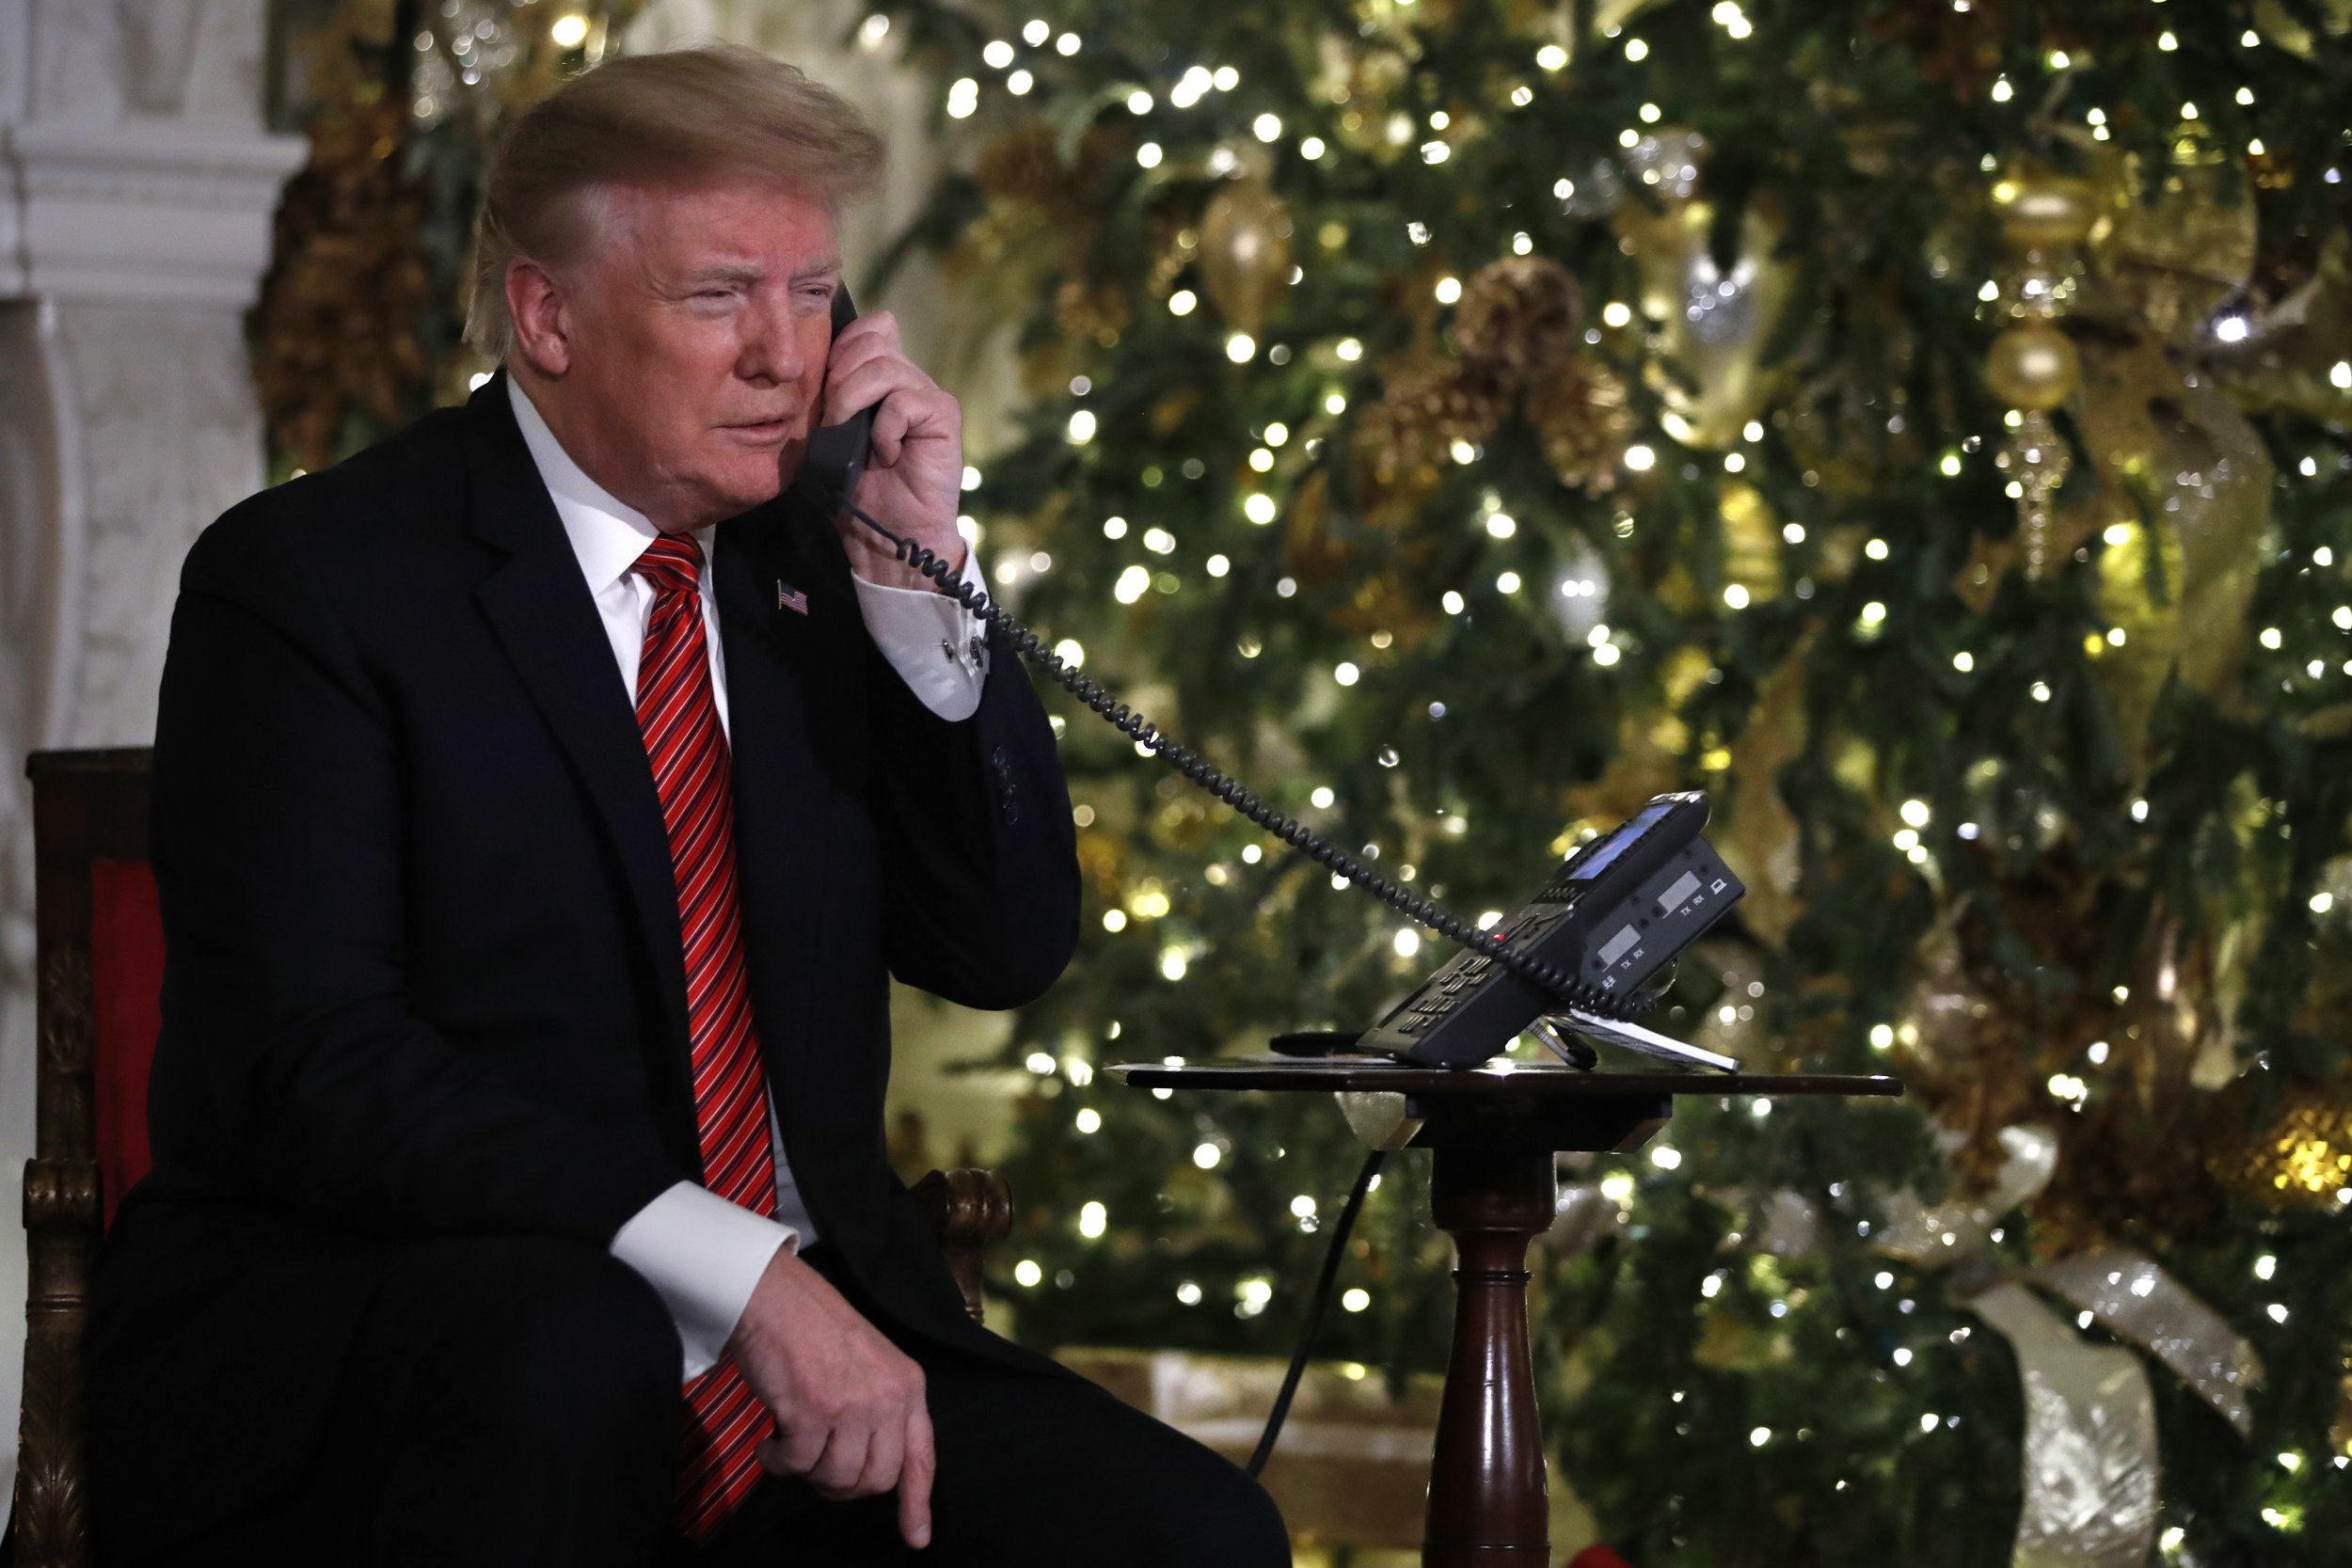 Trump in the White House, frightening children calling the NORAD Santa Tracker hotline, Christmas Eve, Monday, Dec. 24, 2018. (AP Photo/Jacquelyn Martin)